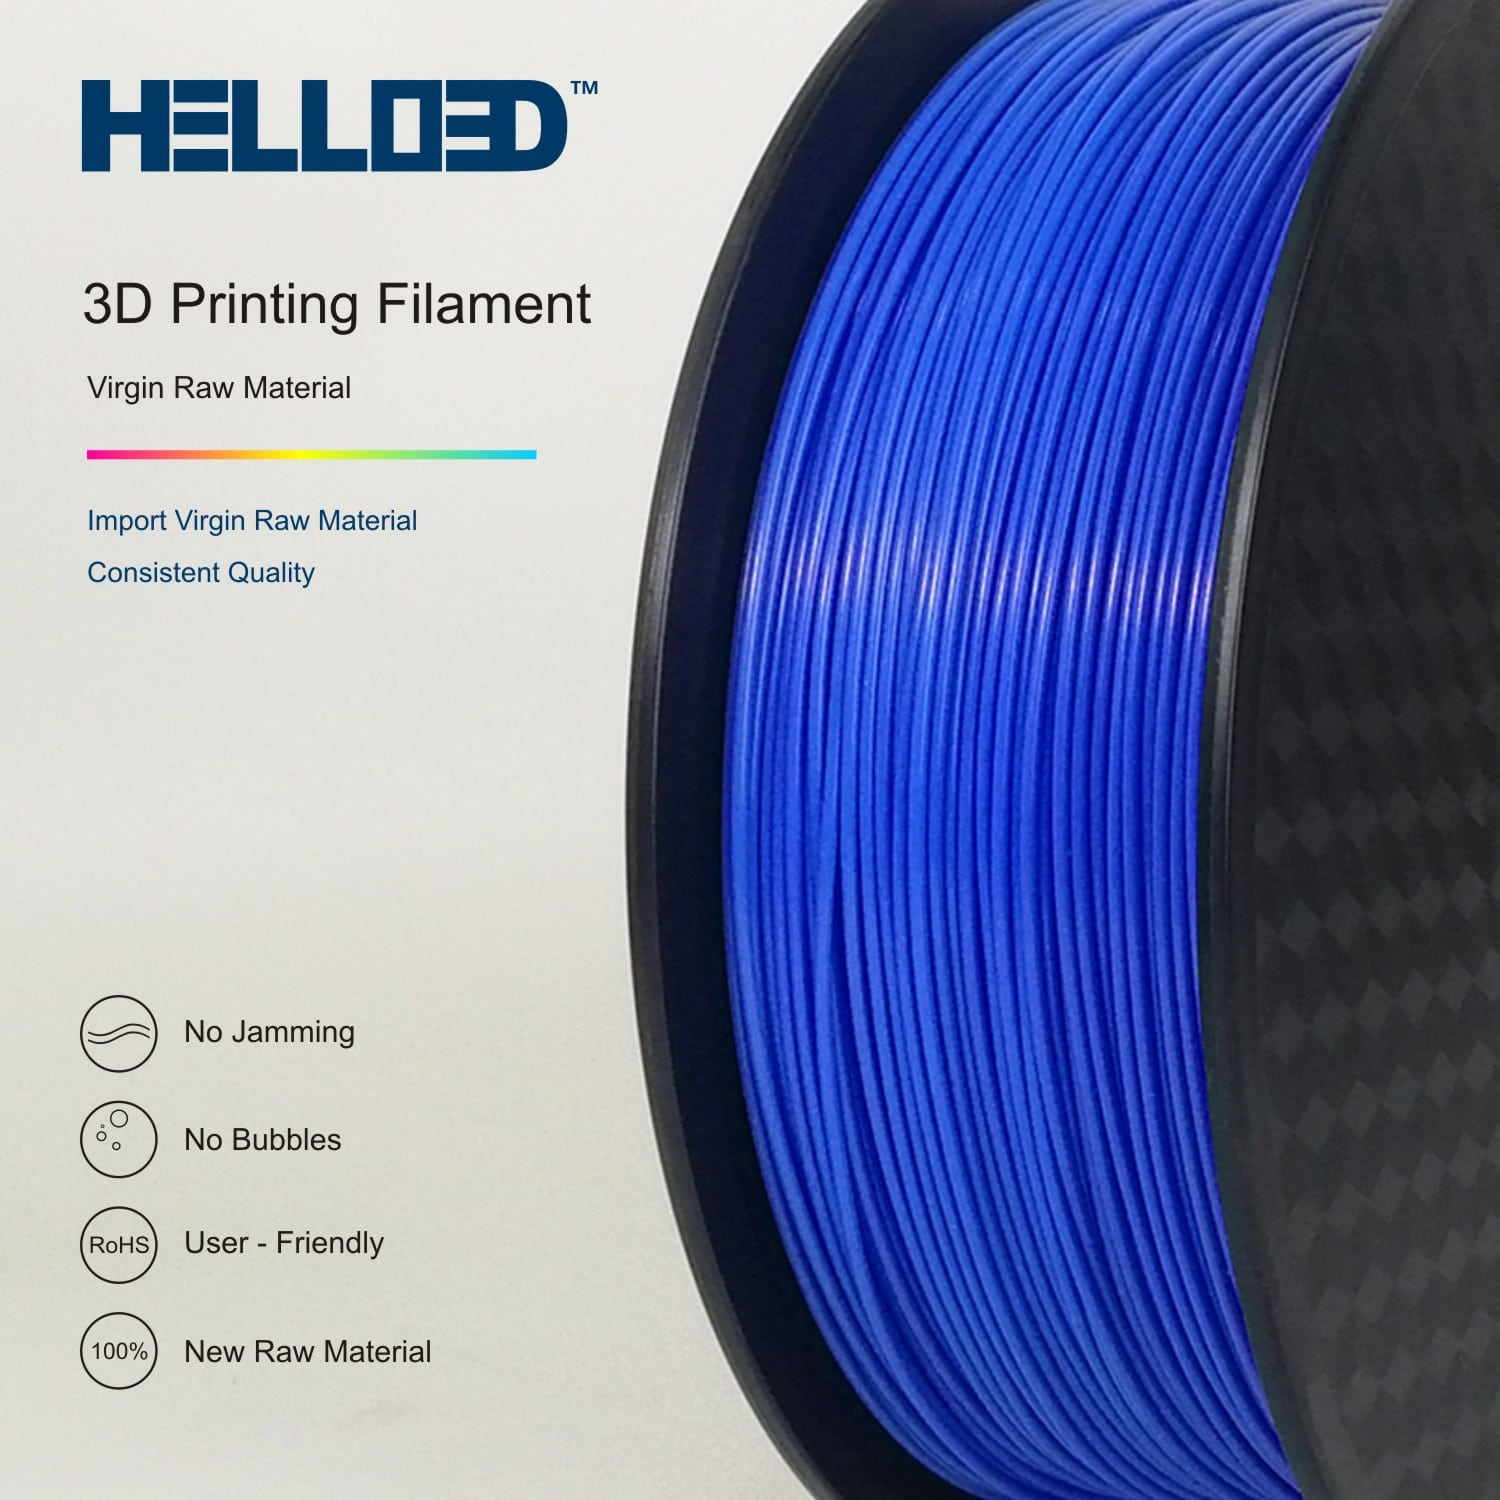 HELLO3D 3D Printer Filament - 1.75mm - Blue - 1Kg